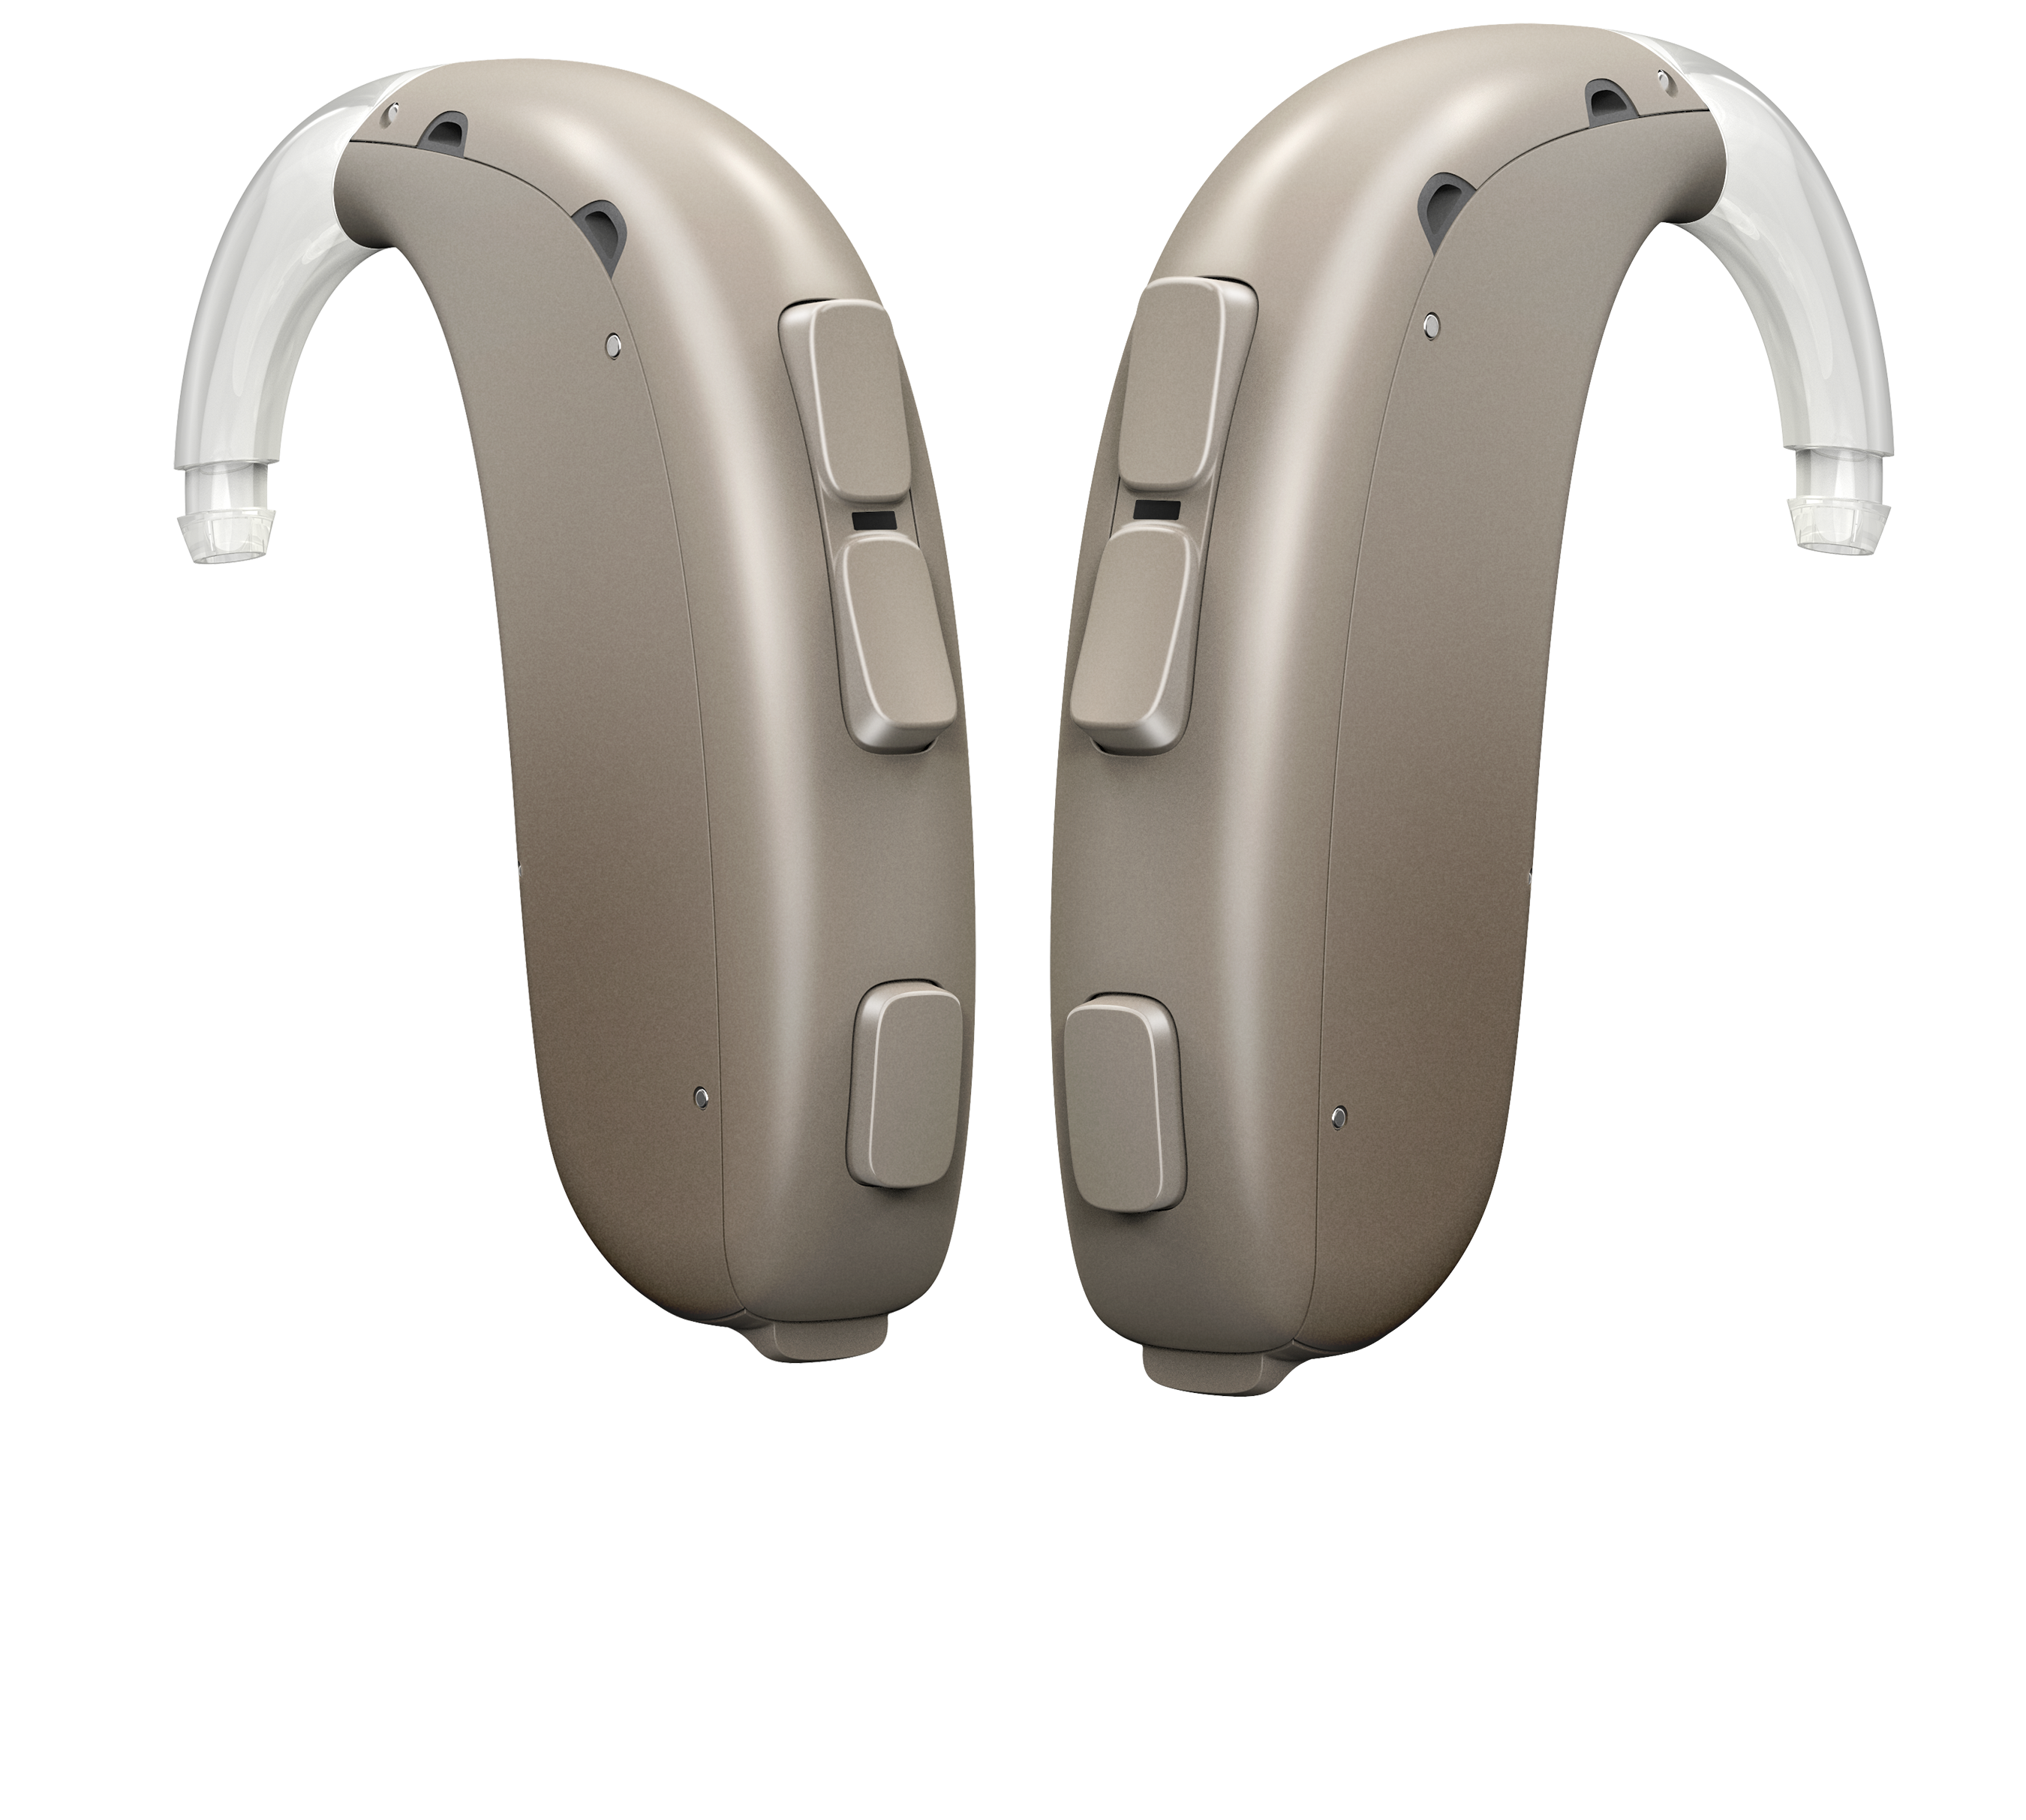 Oticon Xceed Hearing Aids